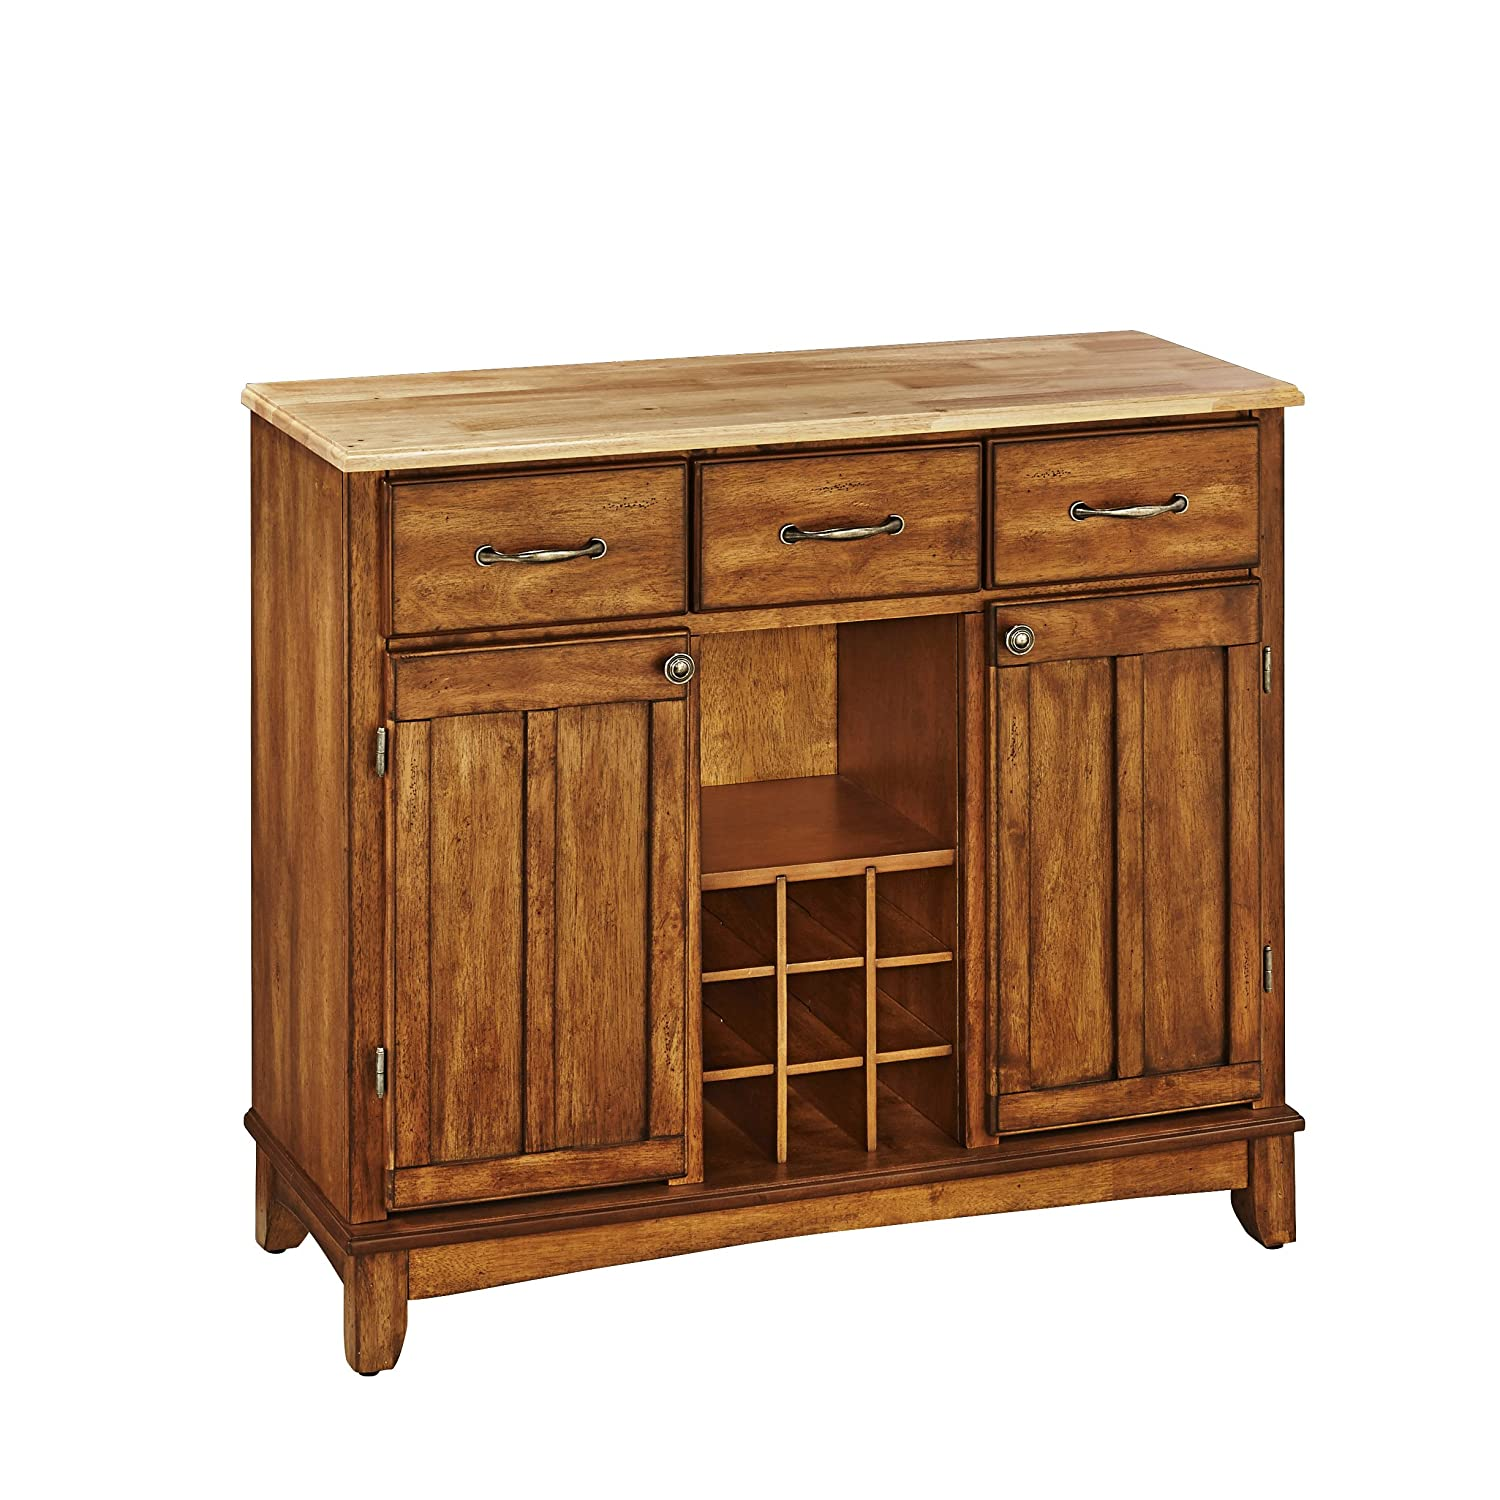 Kitchen Servers Furniture Shop Amazoncom Buffets Sideboards